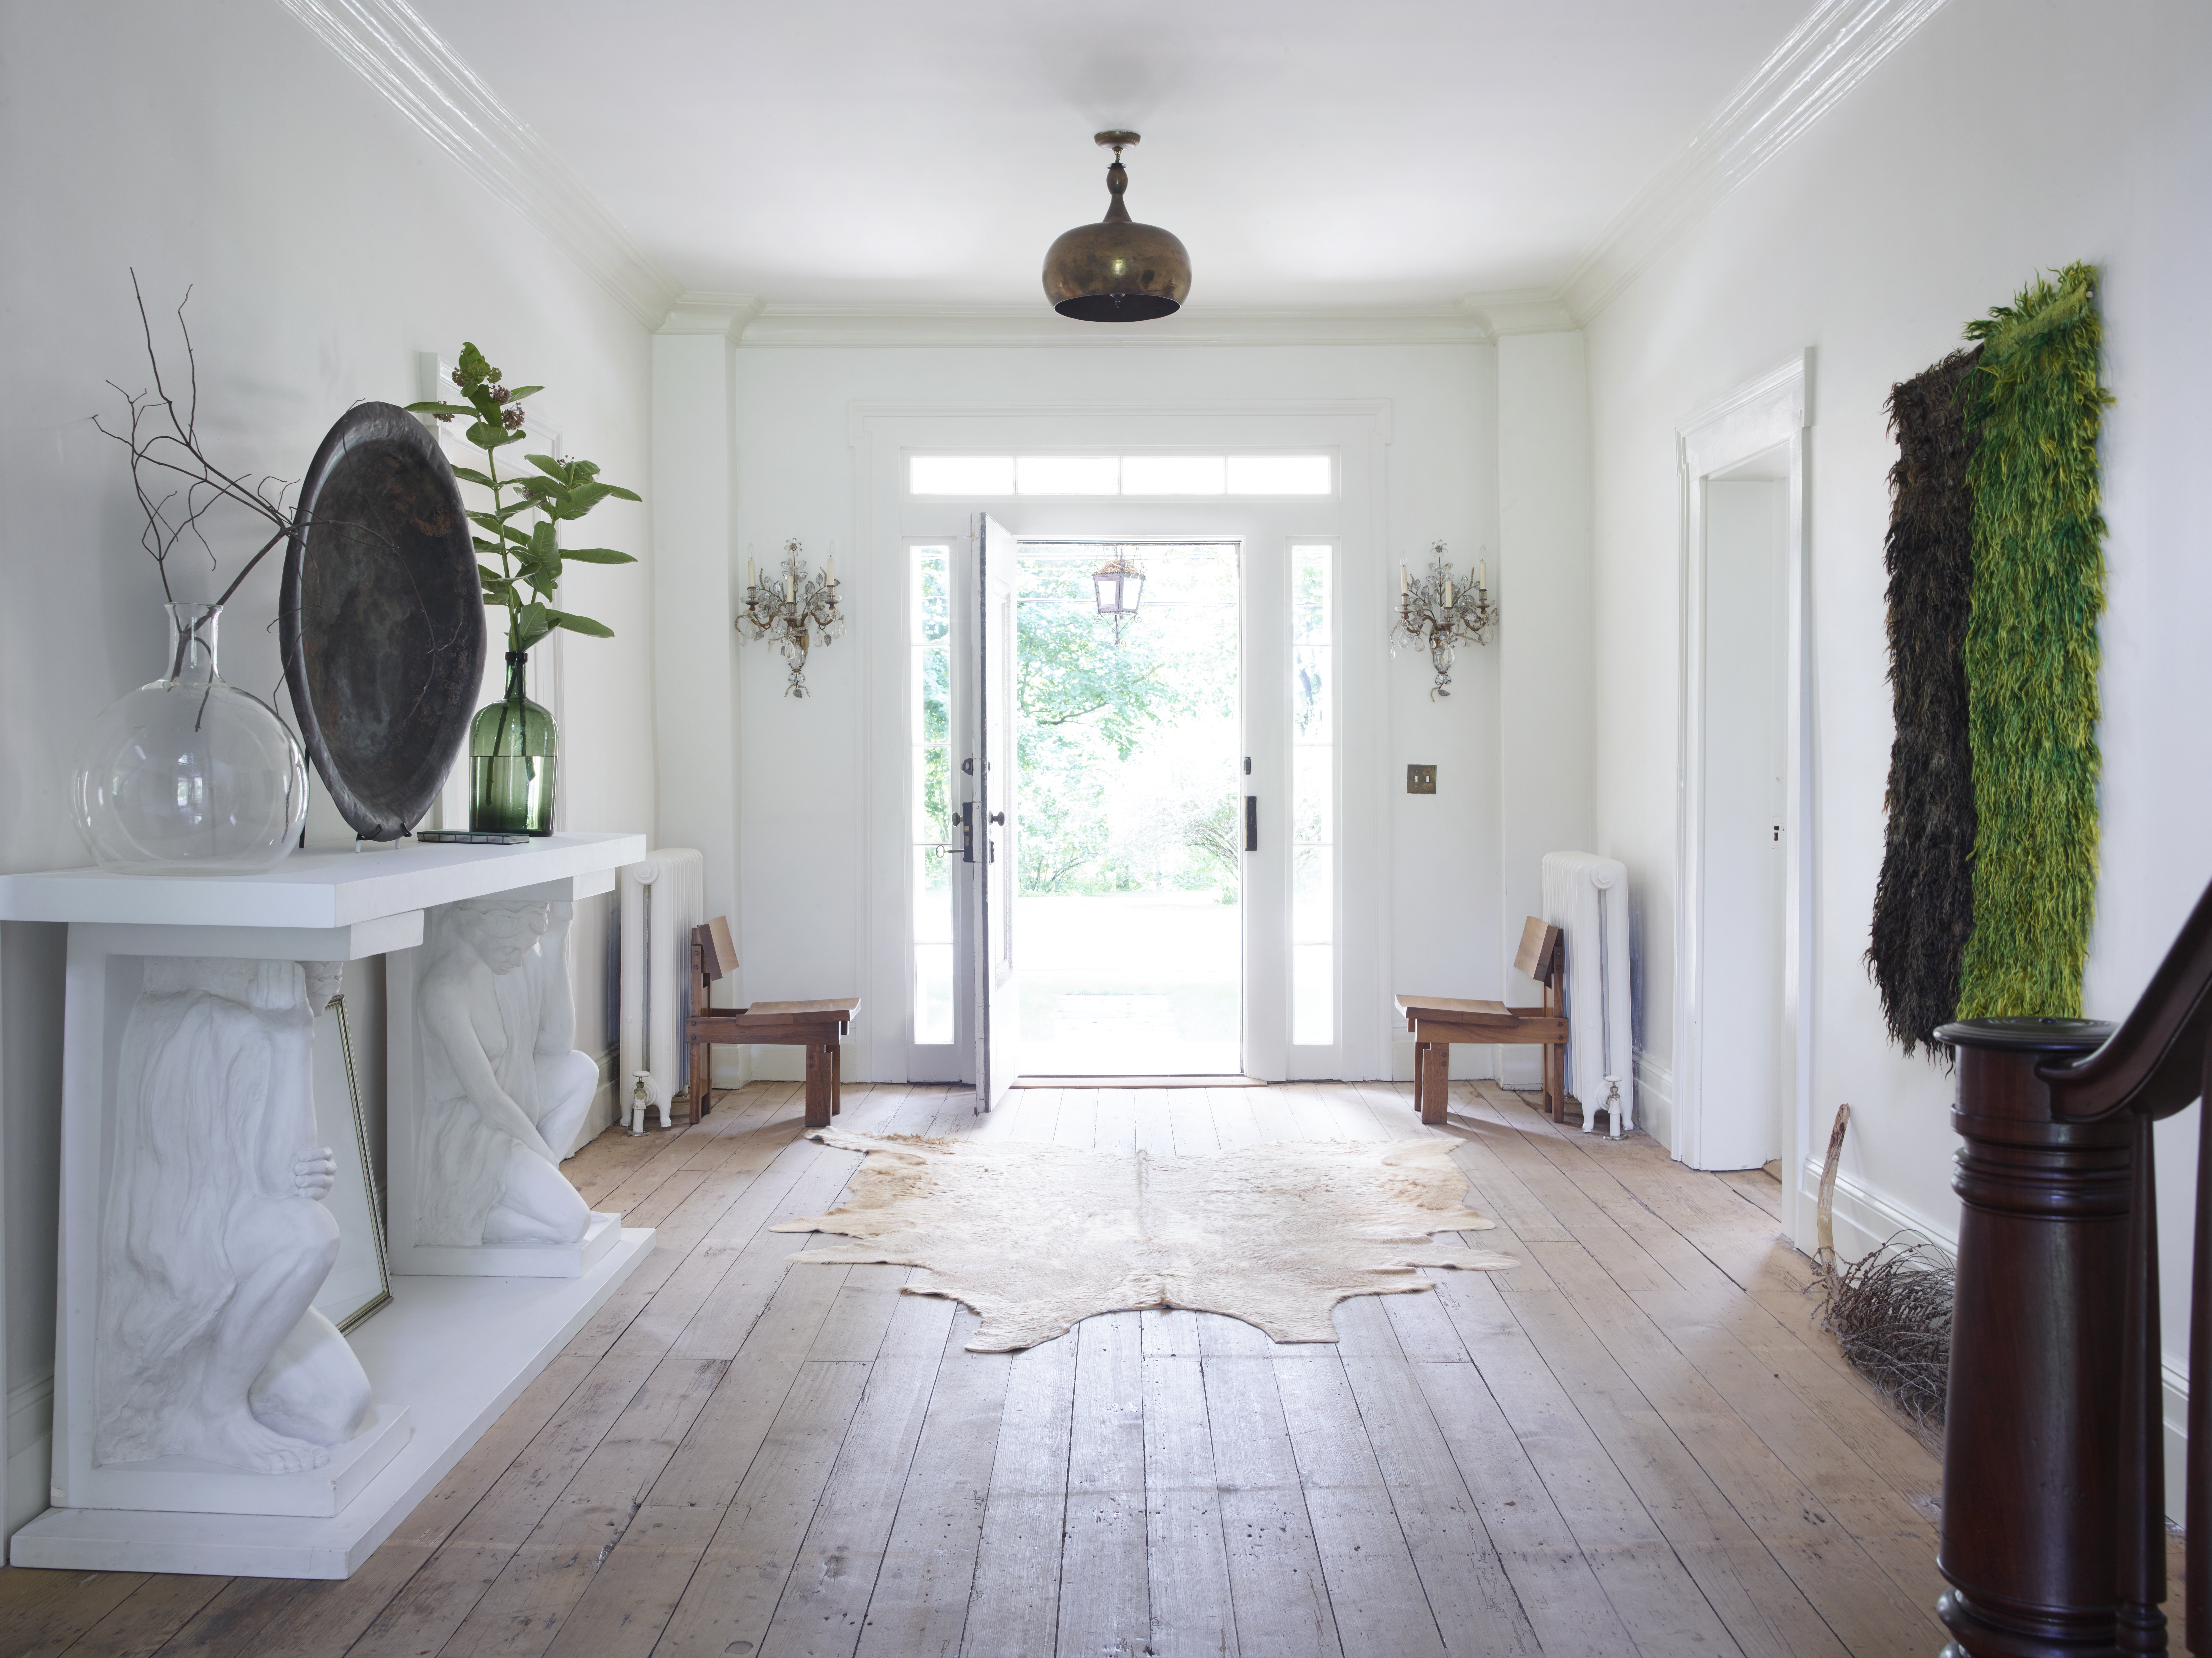 White painted walls provide a modern feel to this 18th century home. The raw wood floor throughout is original.